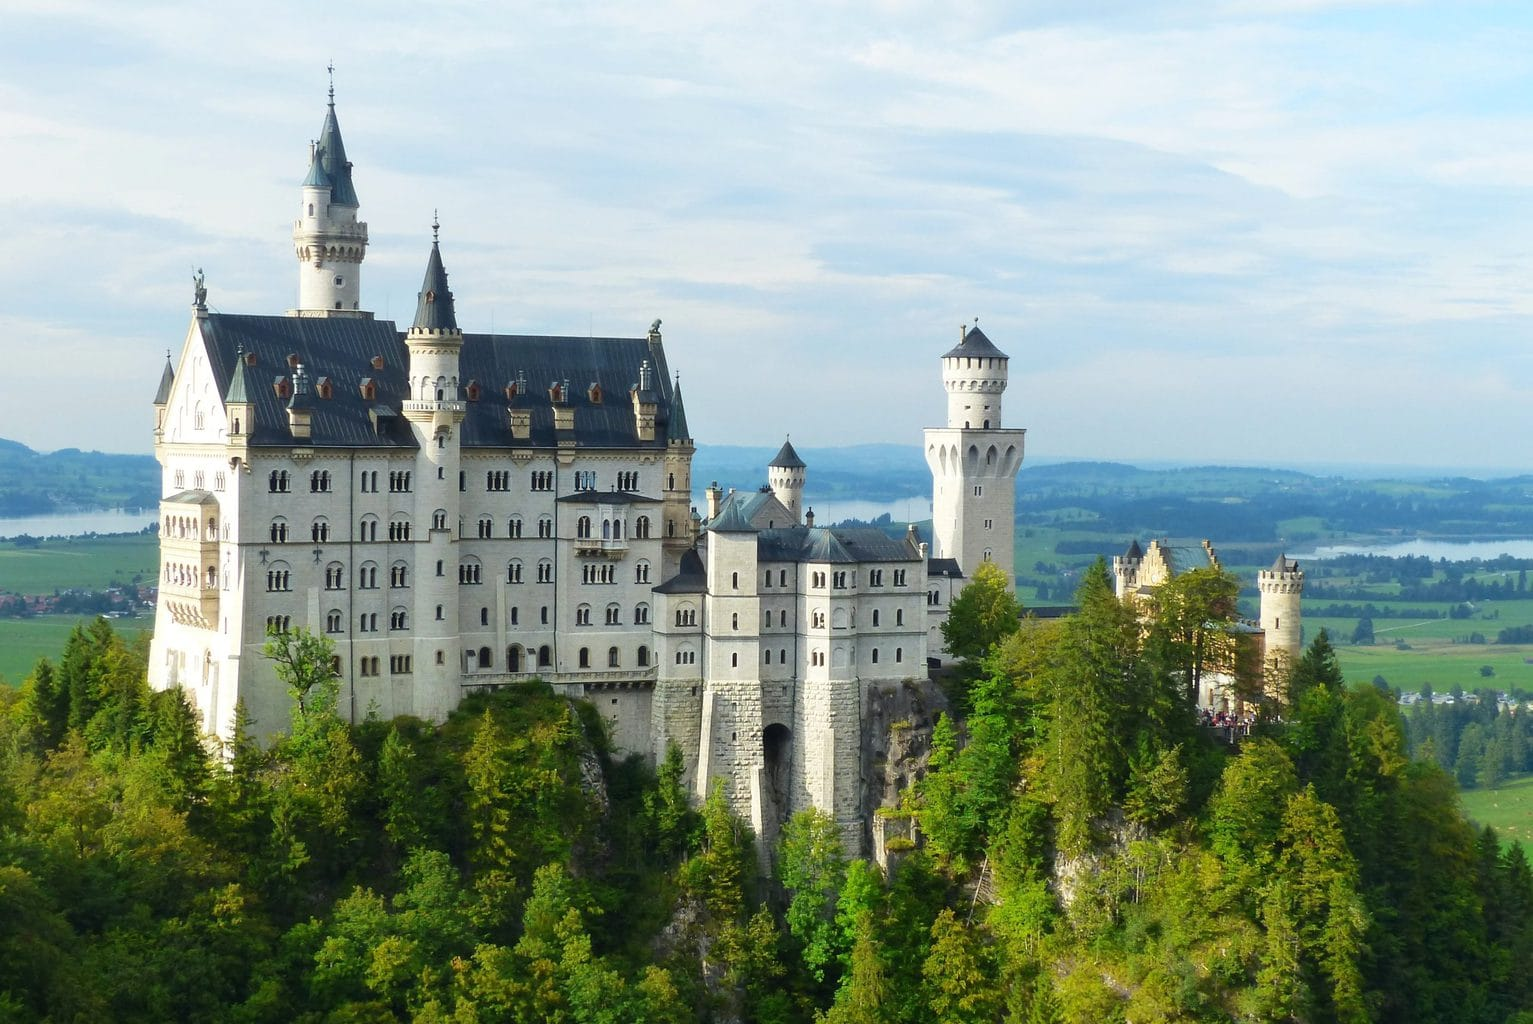 Fussen and Neuschwanstein Castle